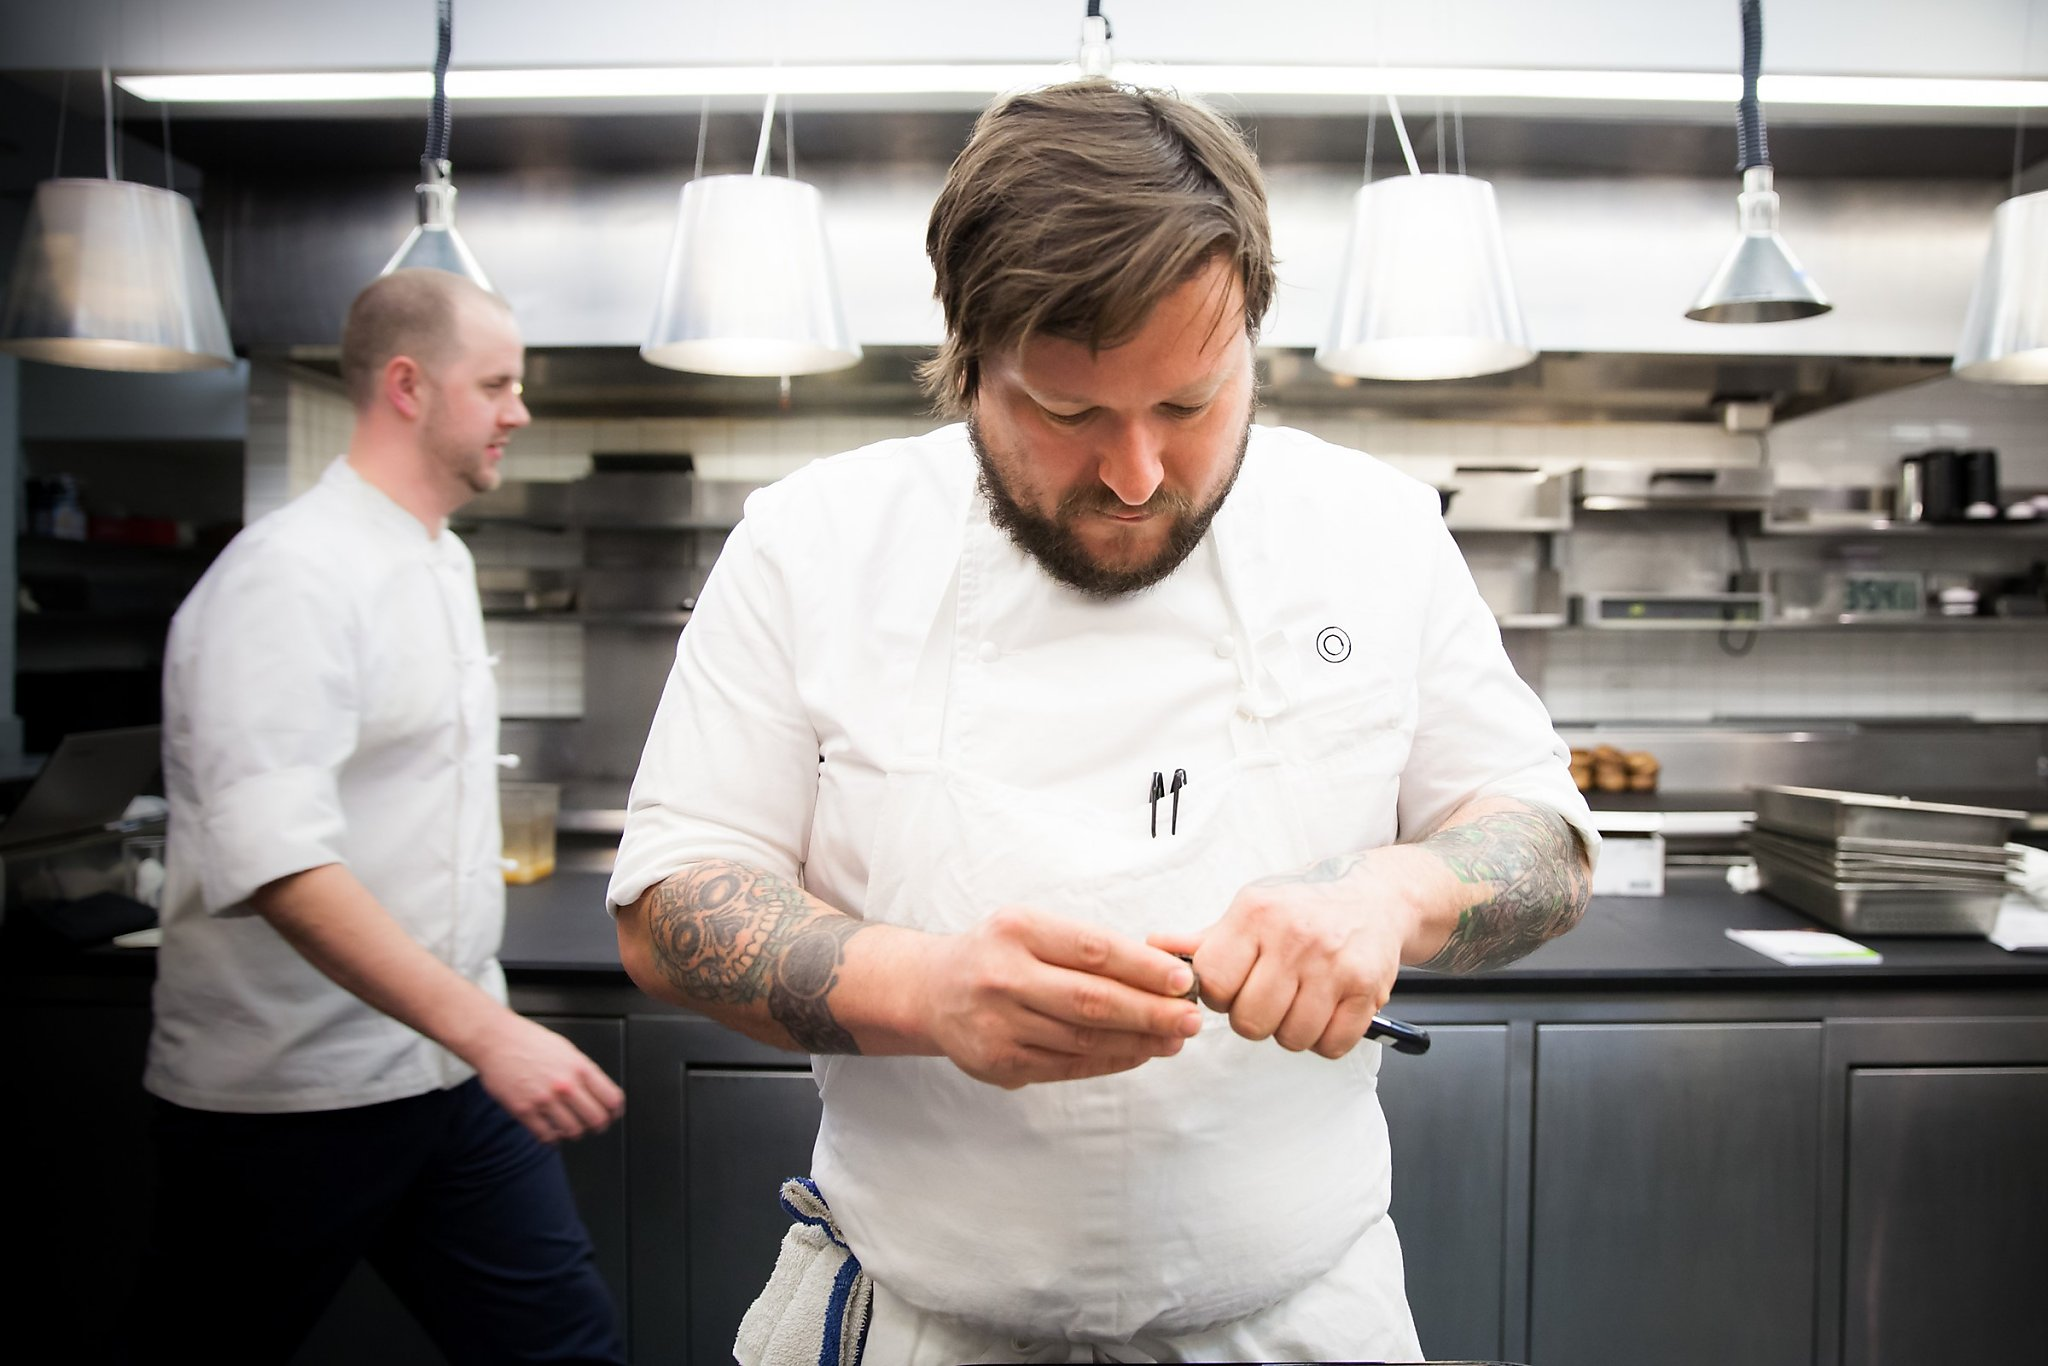 sfchronicle.com - Justin Phillips - Erik Anderson to replace Matthew Kirkley in the Coi kitchen